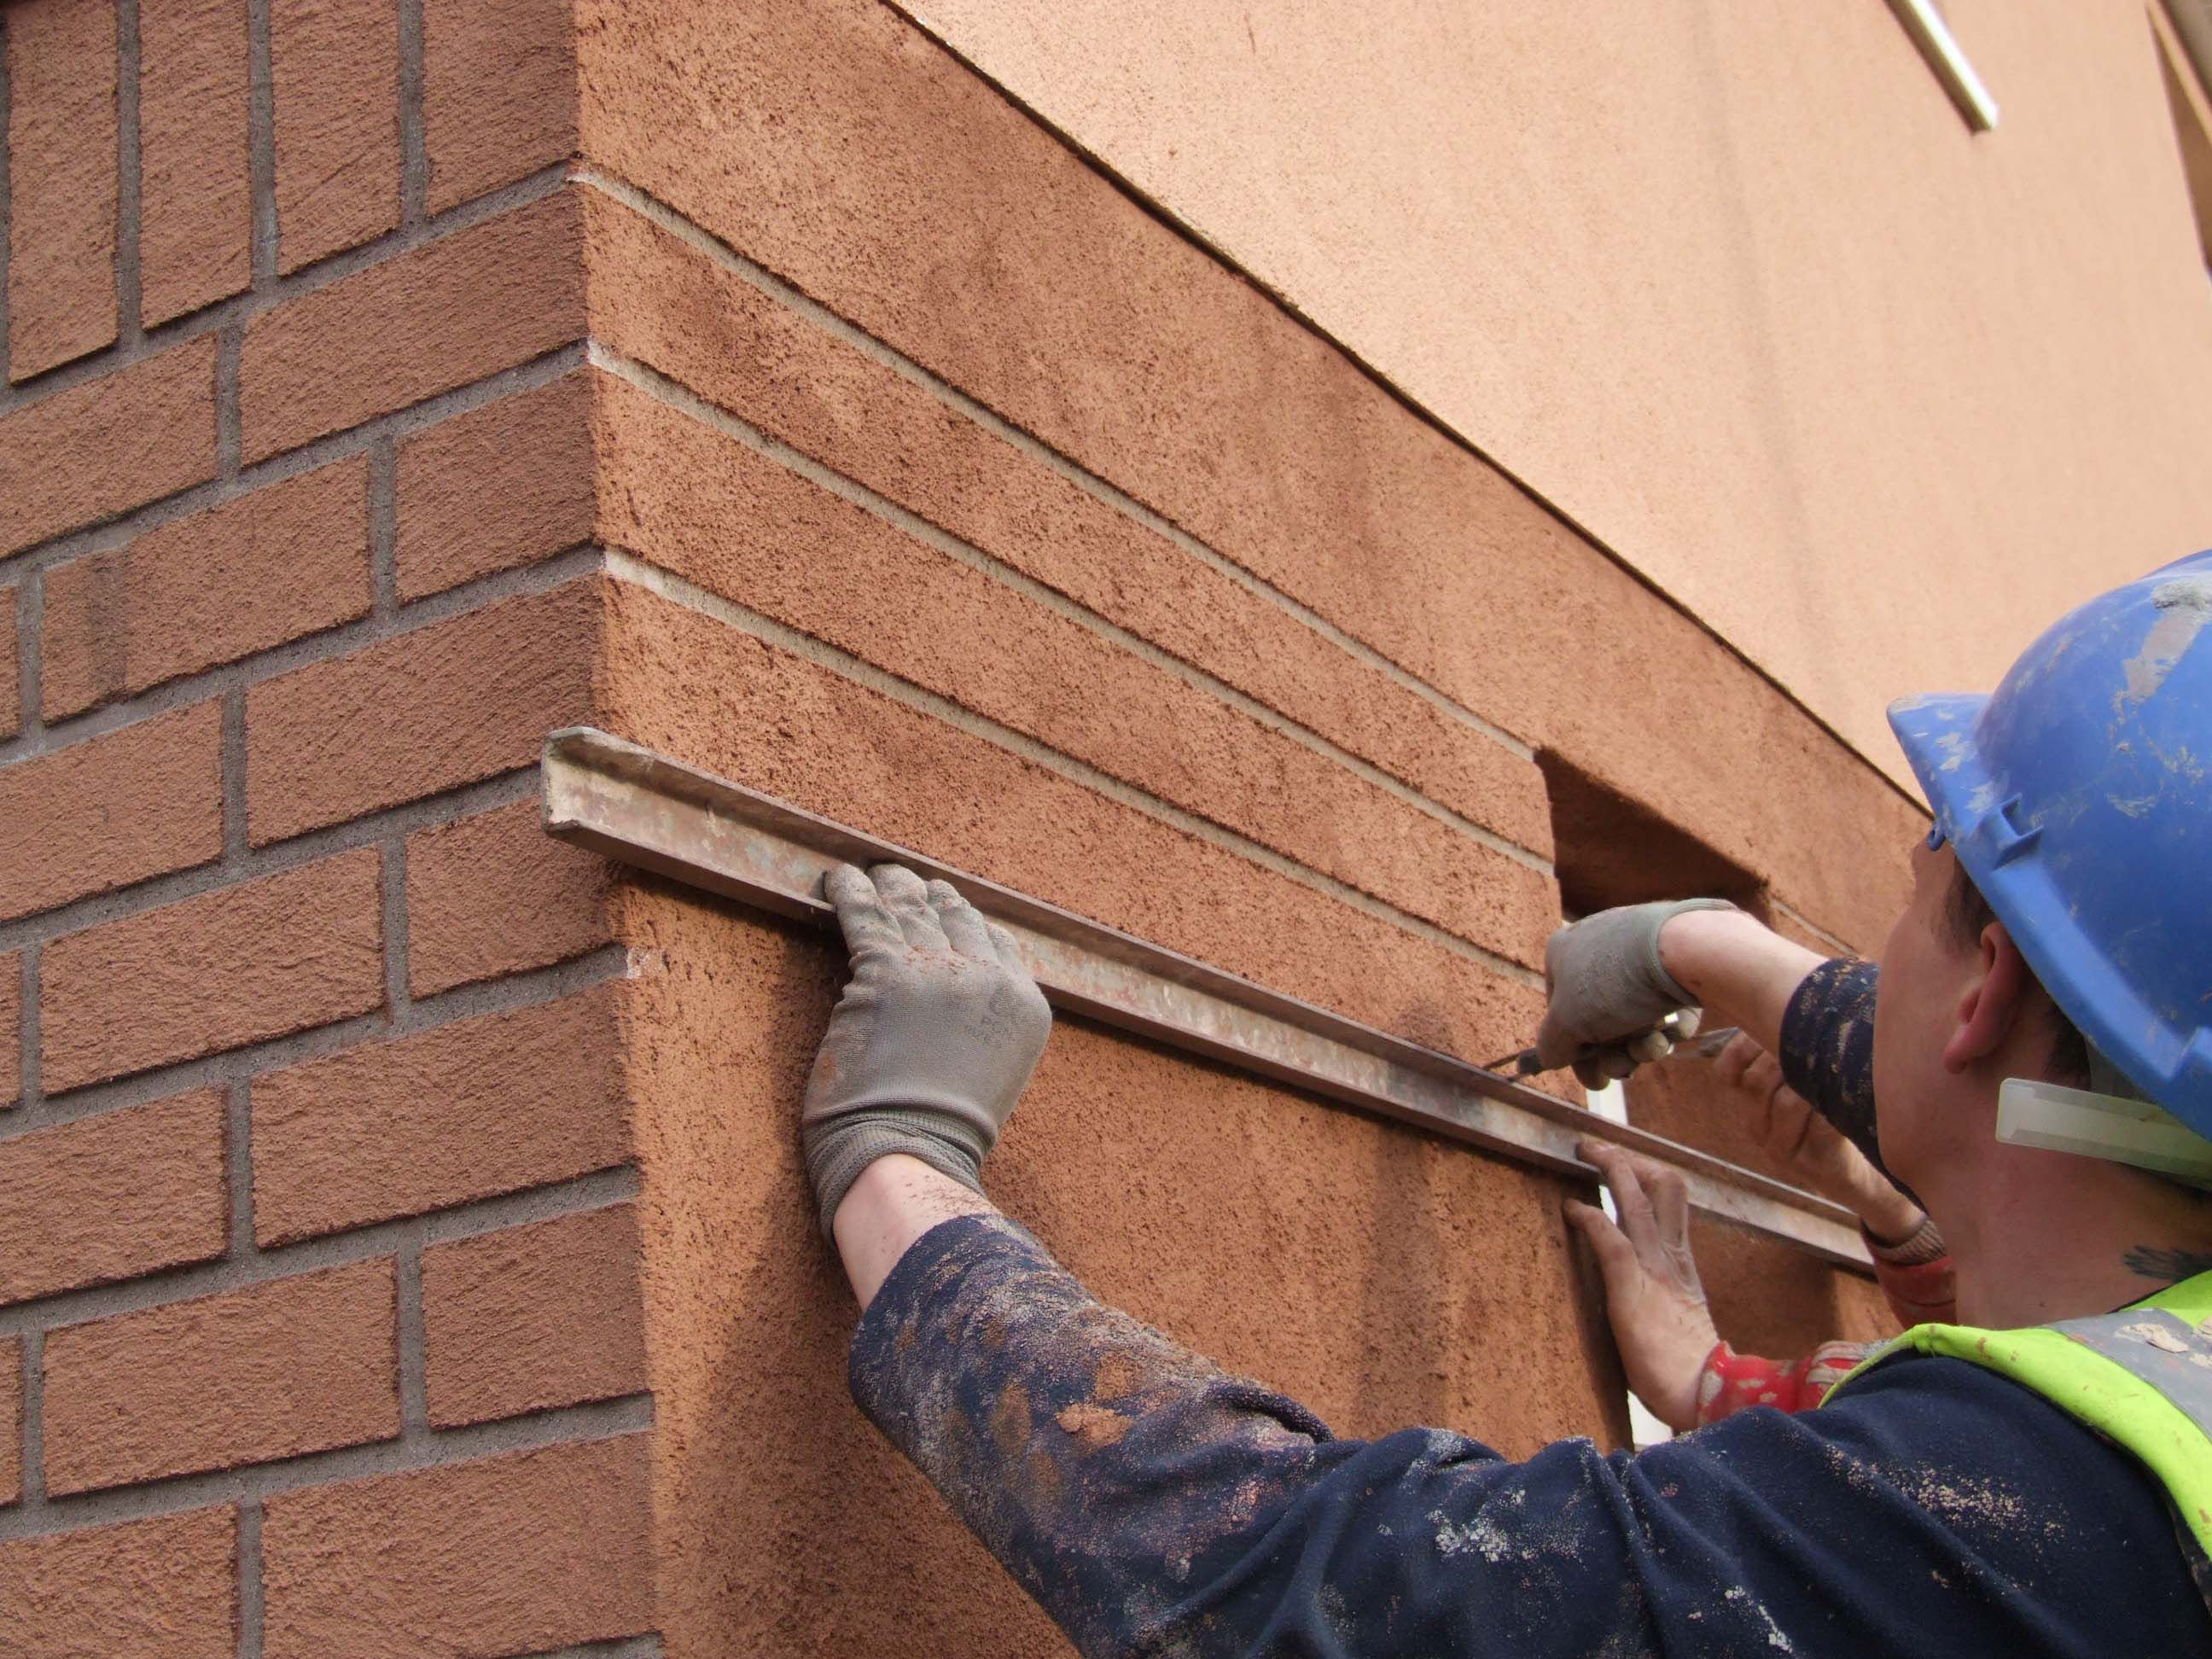 render brick finish on external wall insulation to create a traditional brick finish to the facade